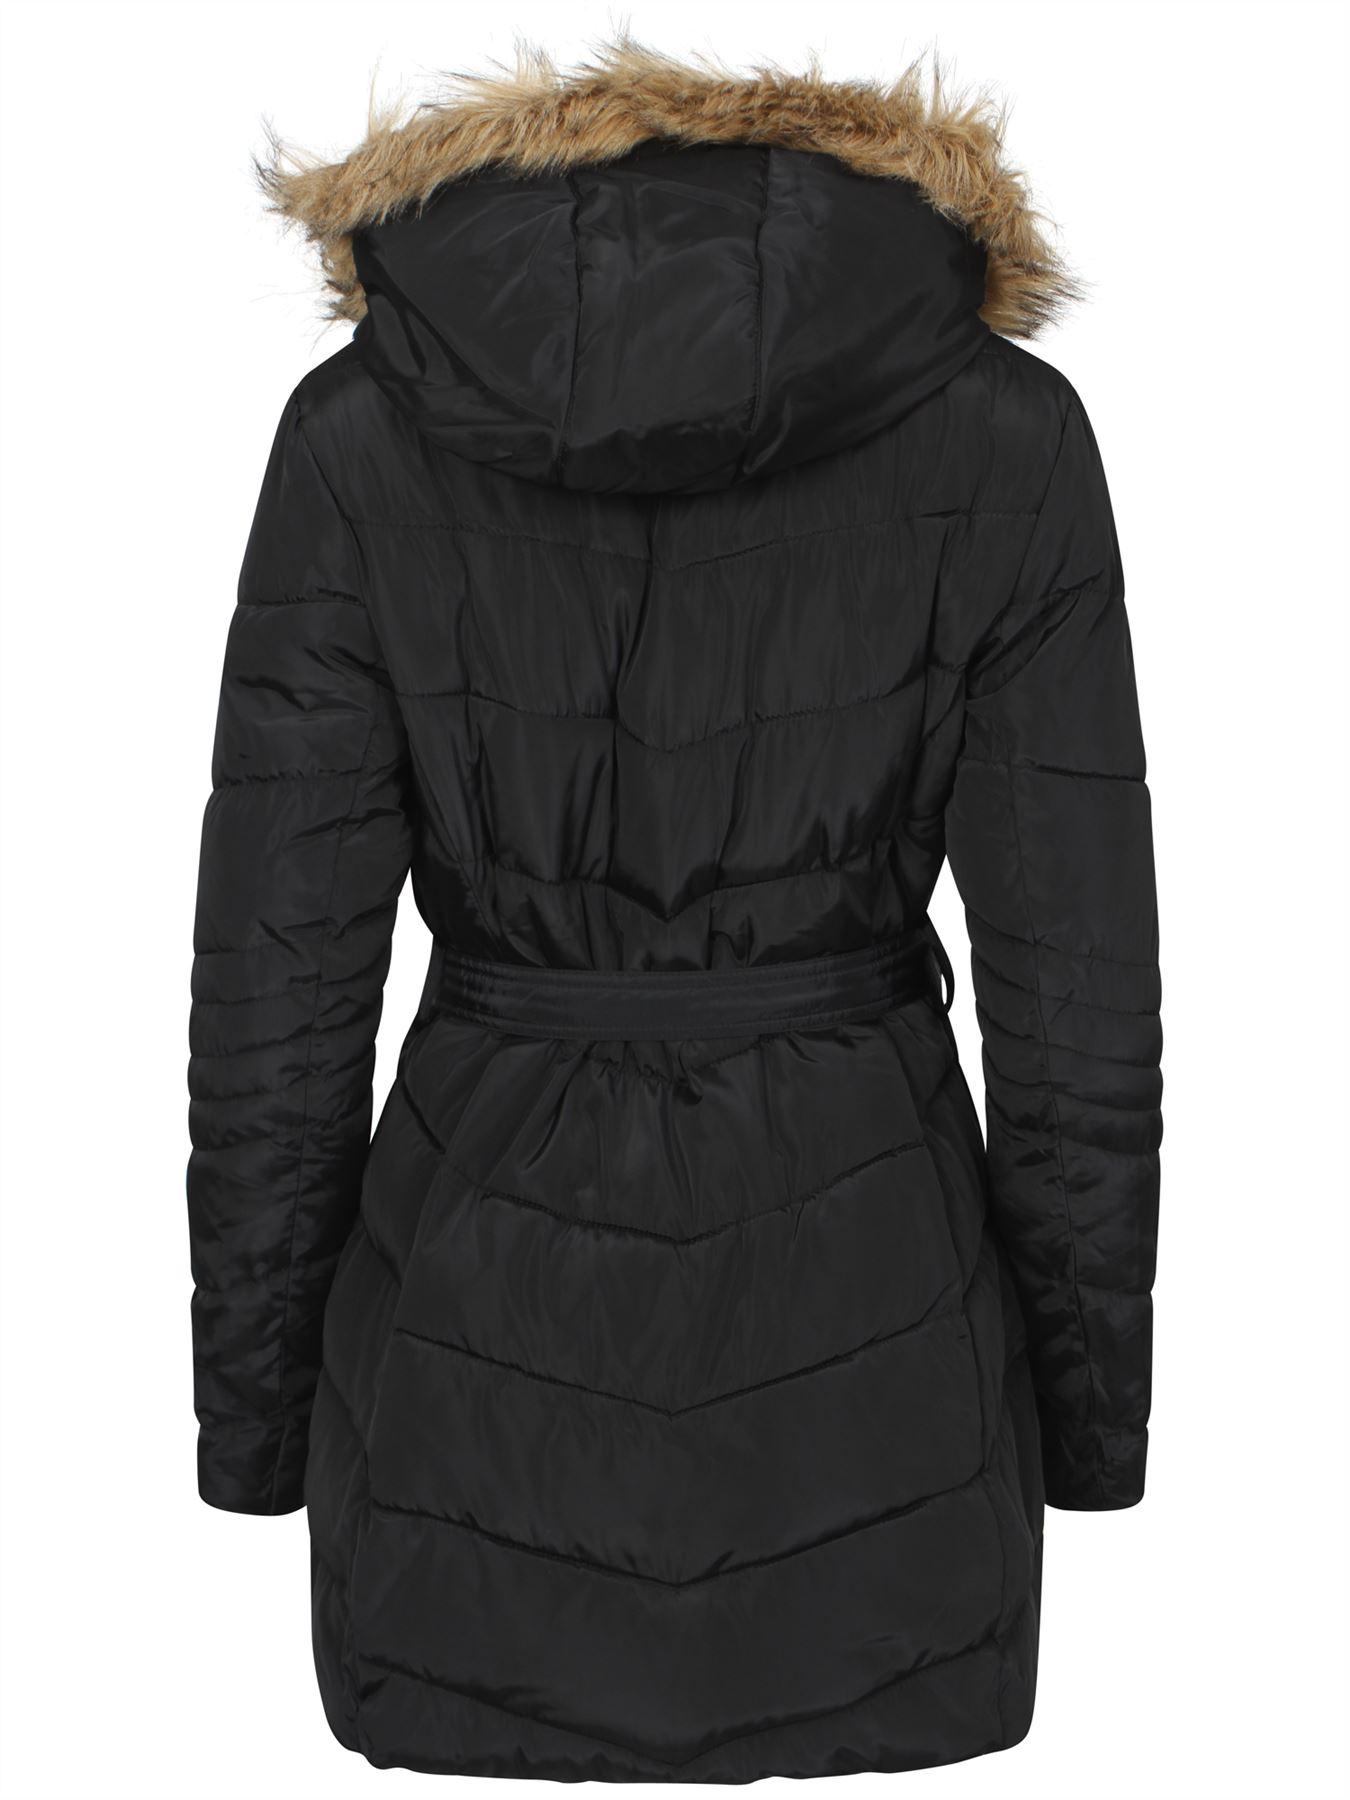 Womens-Coat-Parka-Waist-Belt-Fur-Zipped-Padded-Quilted-Jacket-Black-Hood-UK-8-16 thumbnail 4